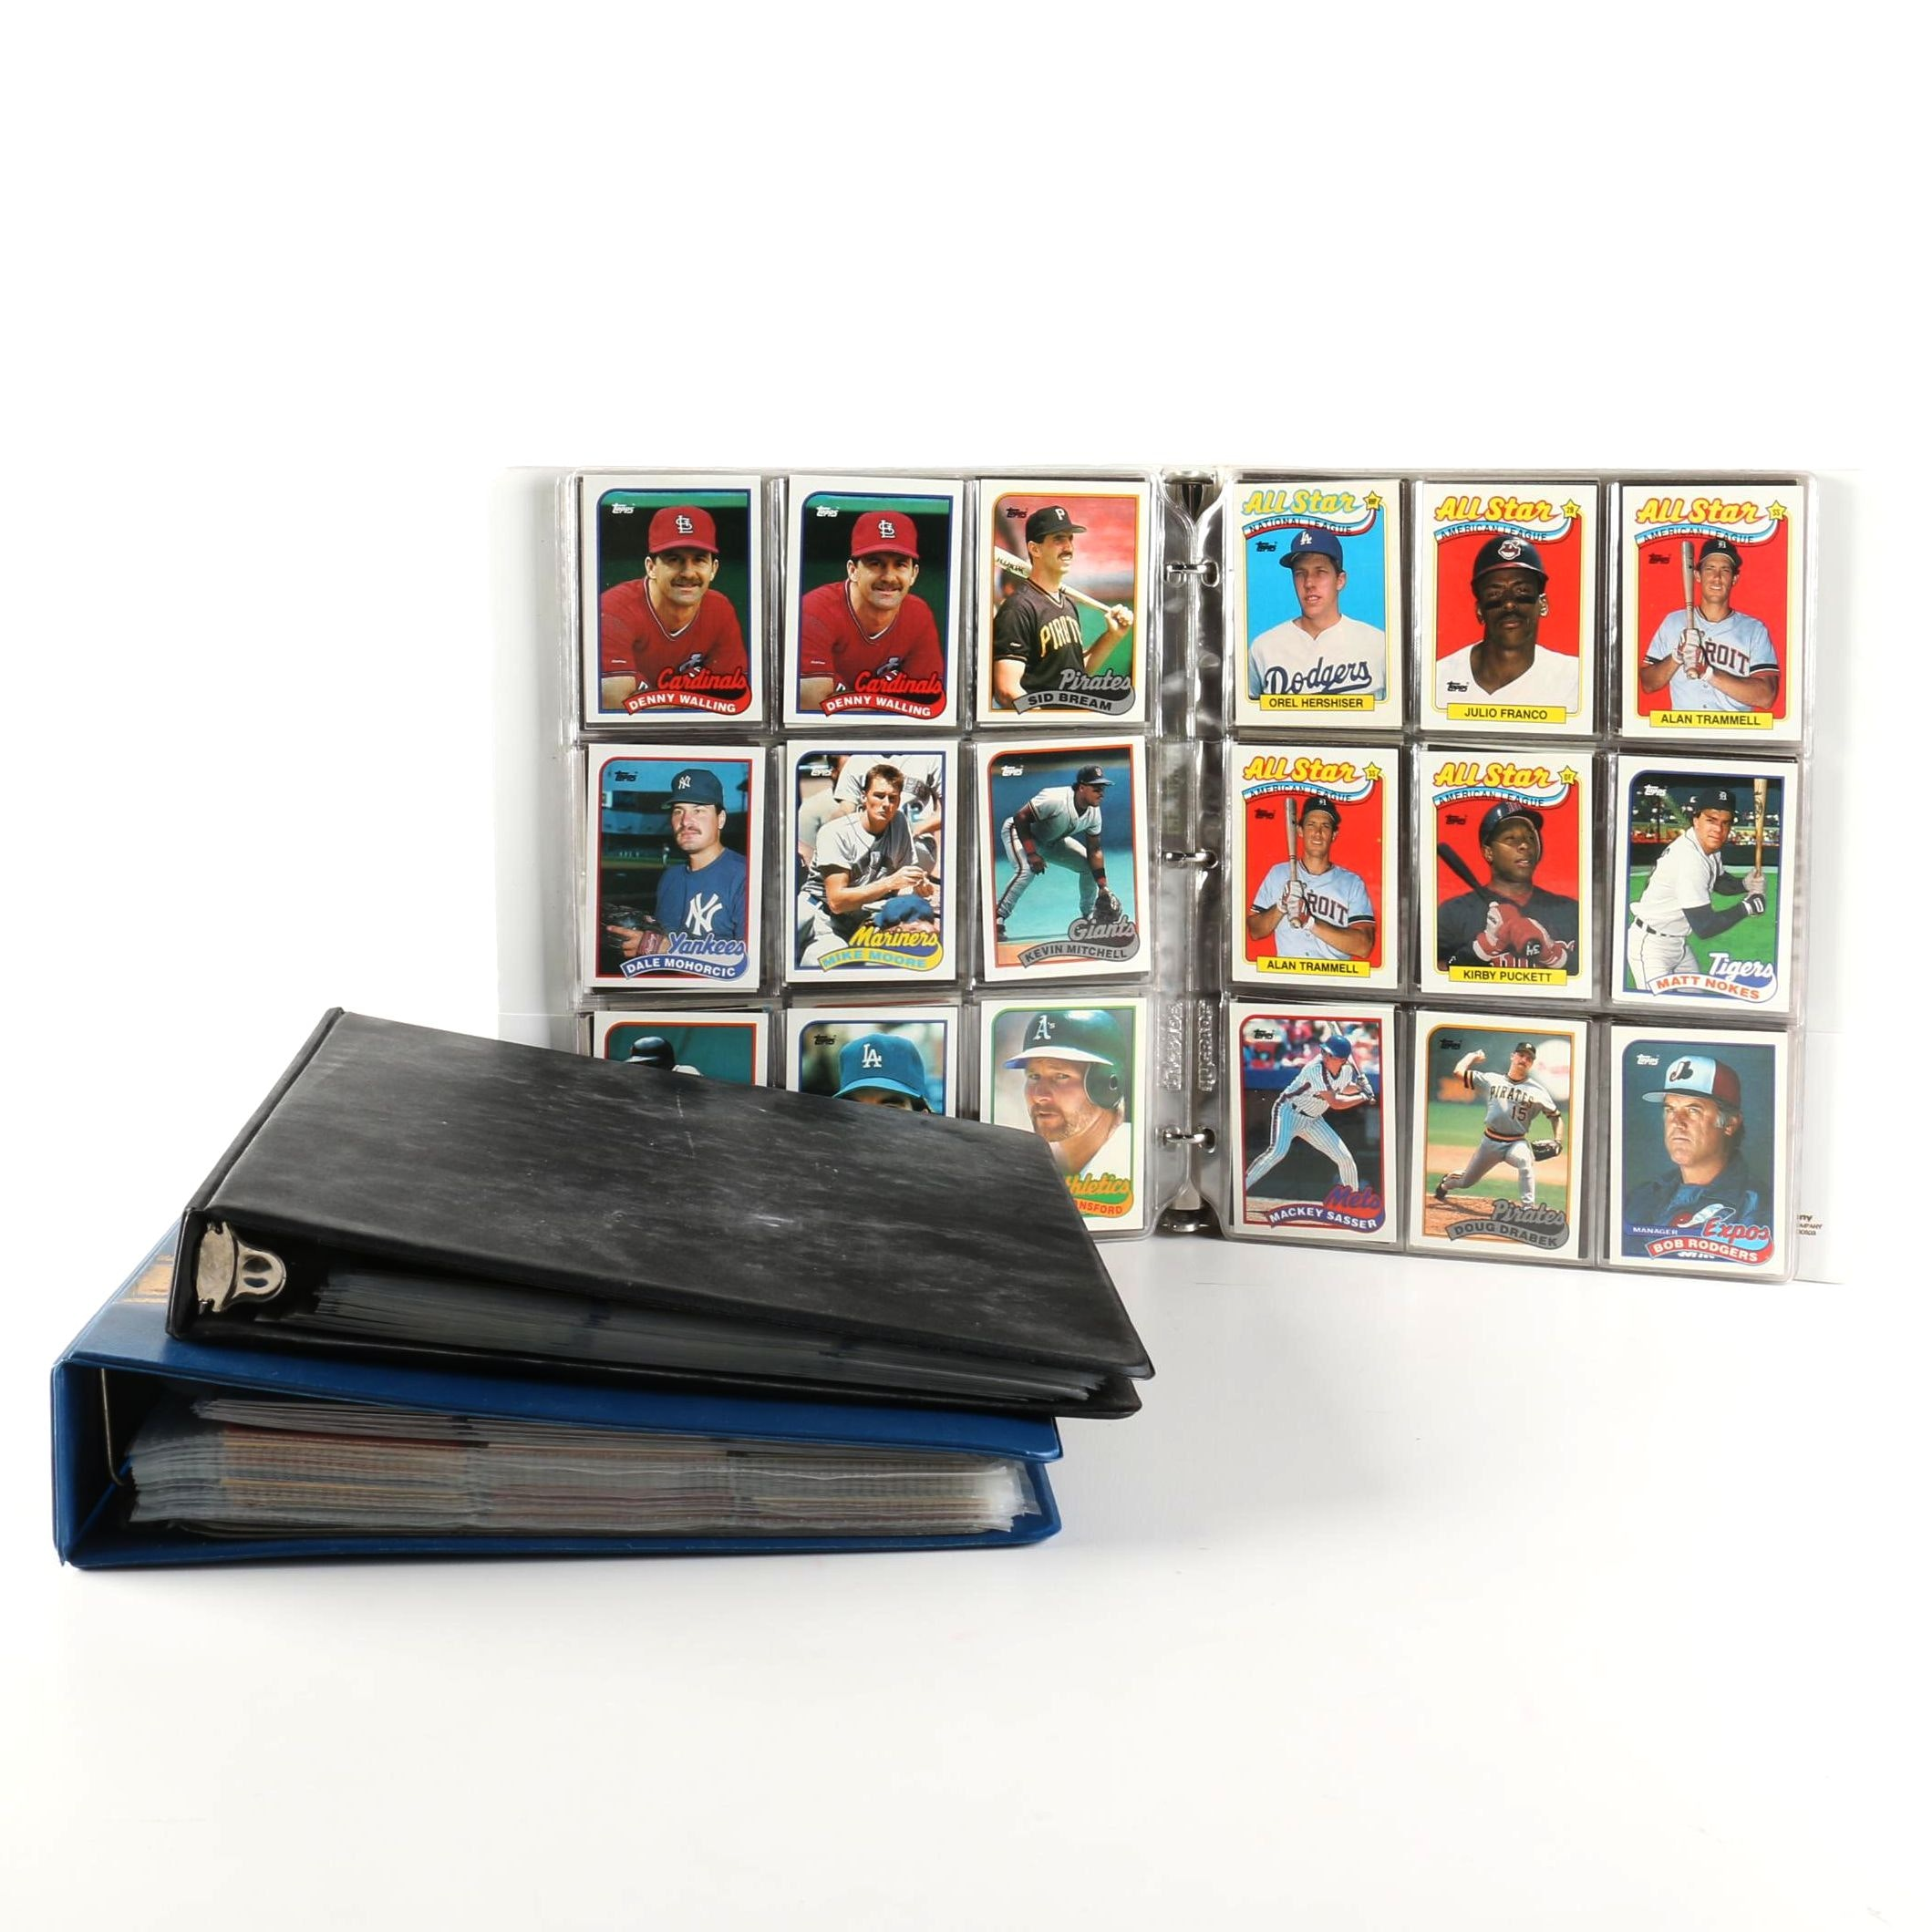 Collection of Baseball Cards Including Topps and Upper Deck